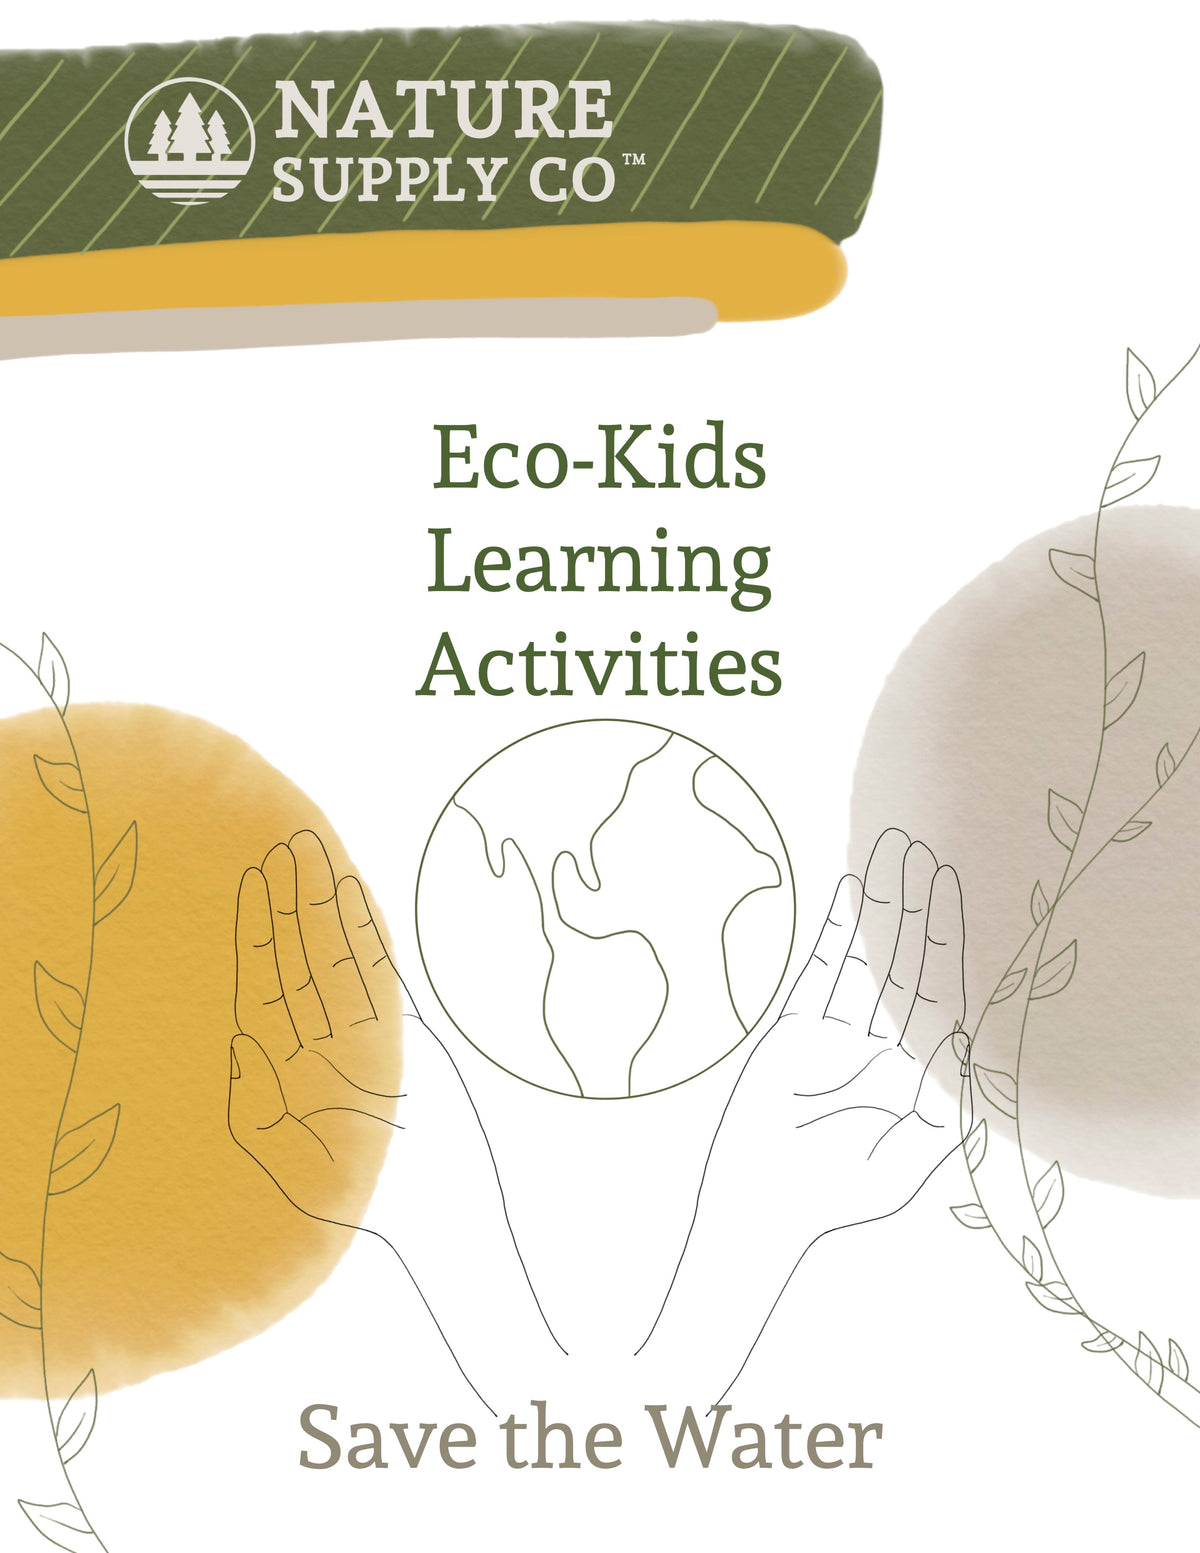 Eco-Kids Learning: Save the Water